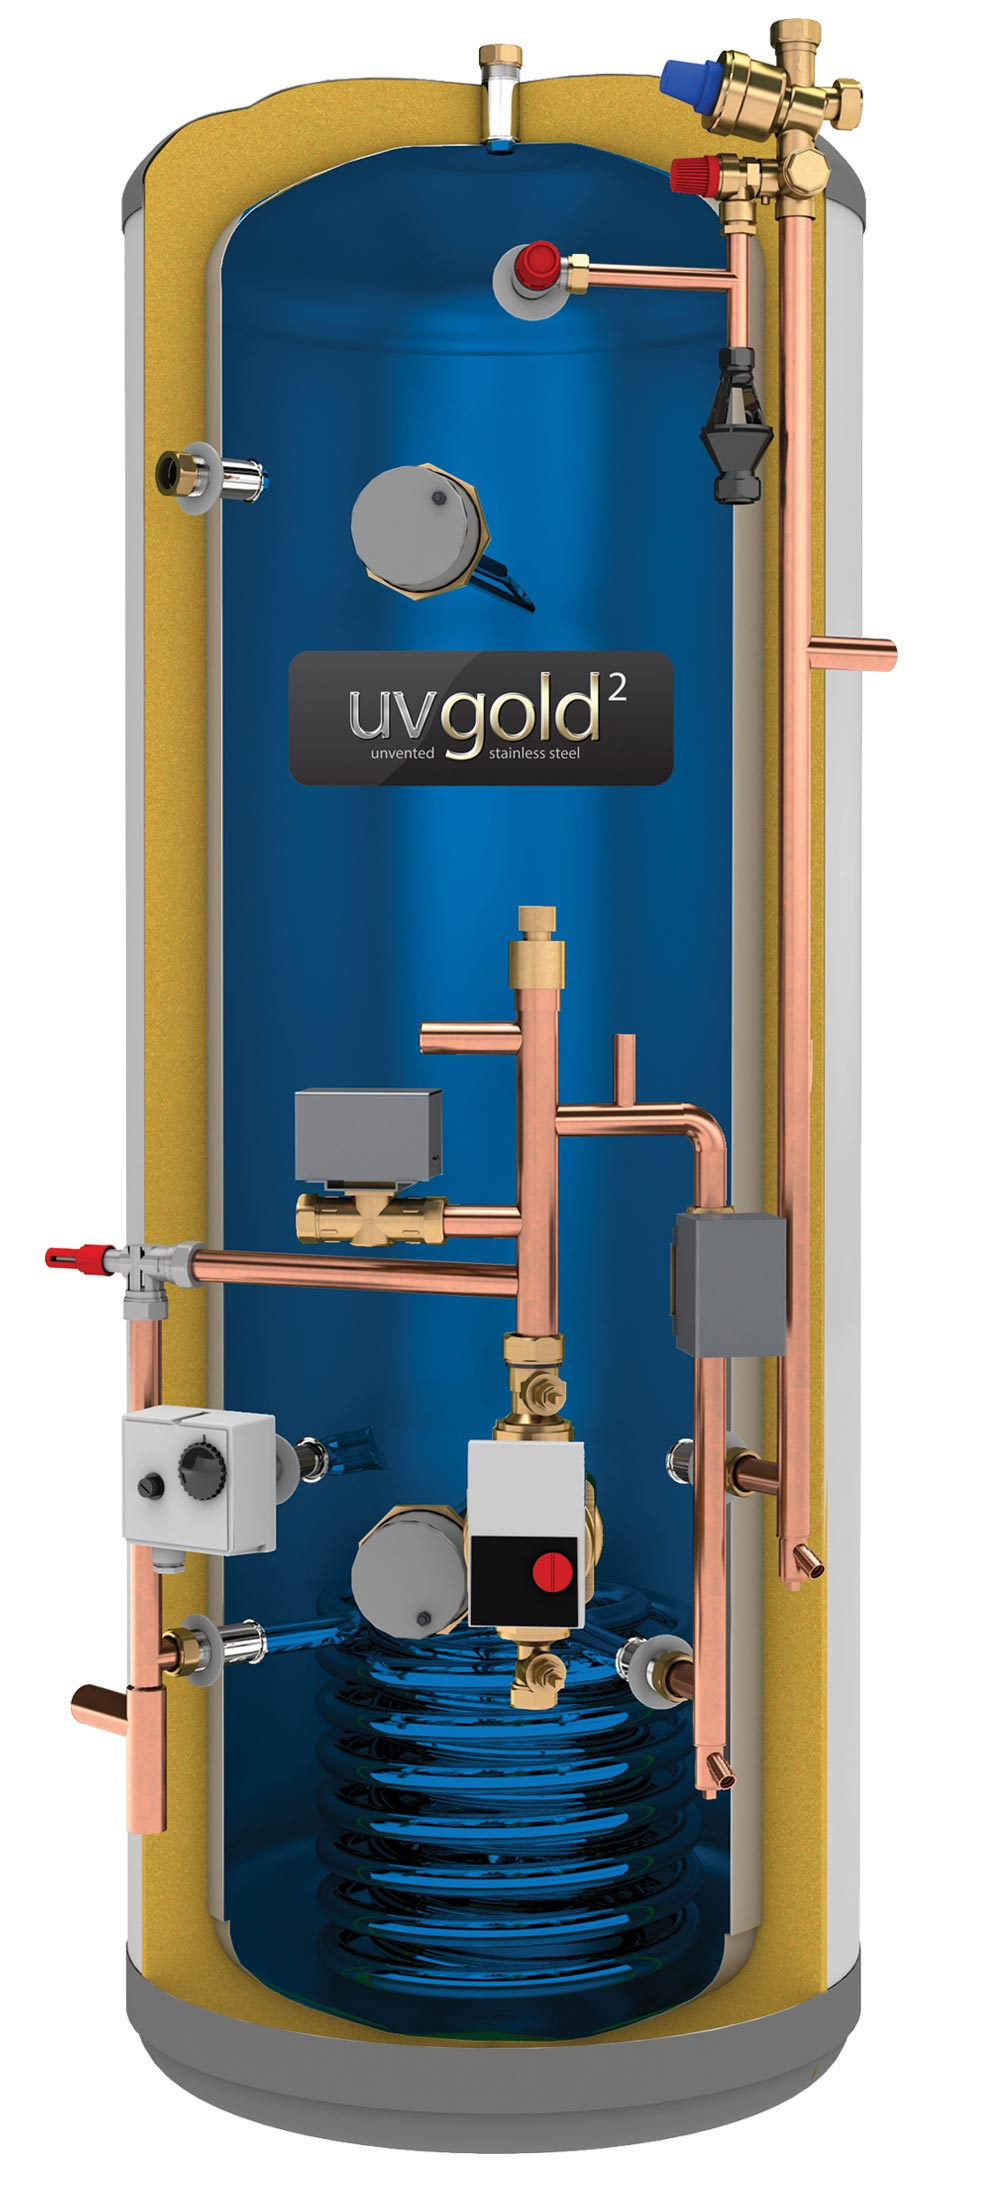 UVgold 2 - Stainless 180L Pre-Plumbed Unvented Hot Water Storage ...